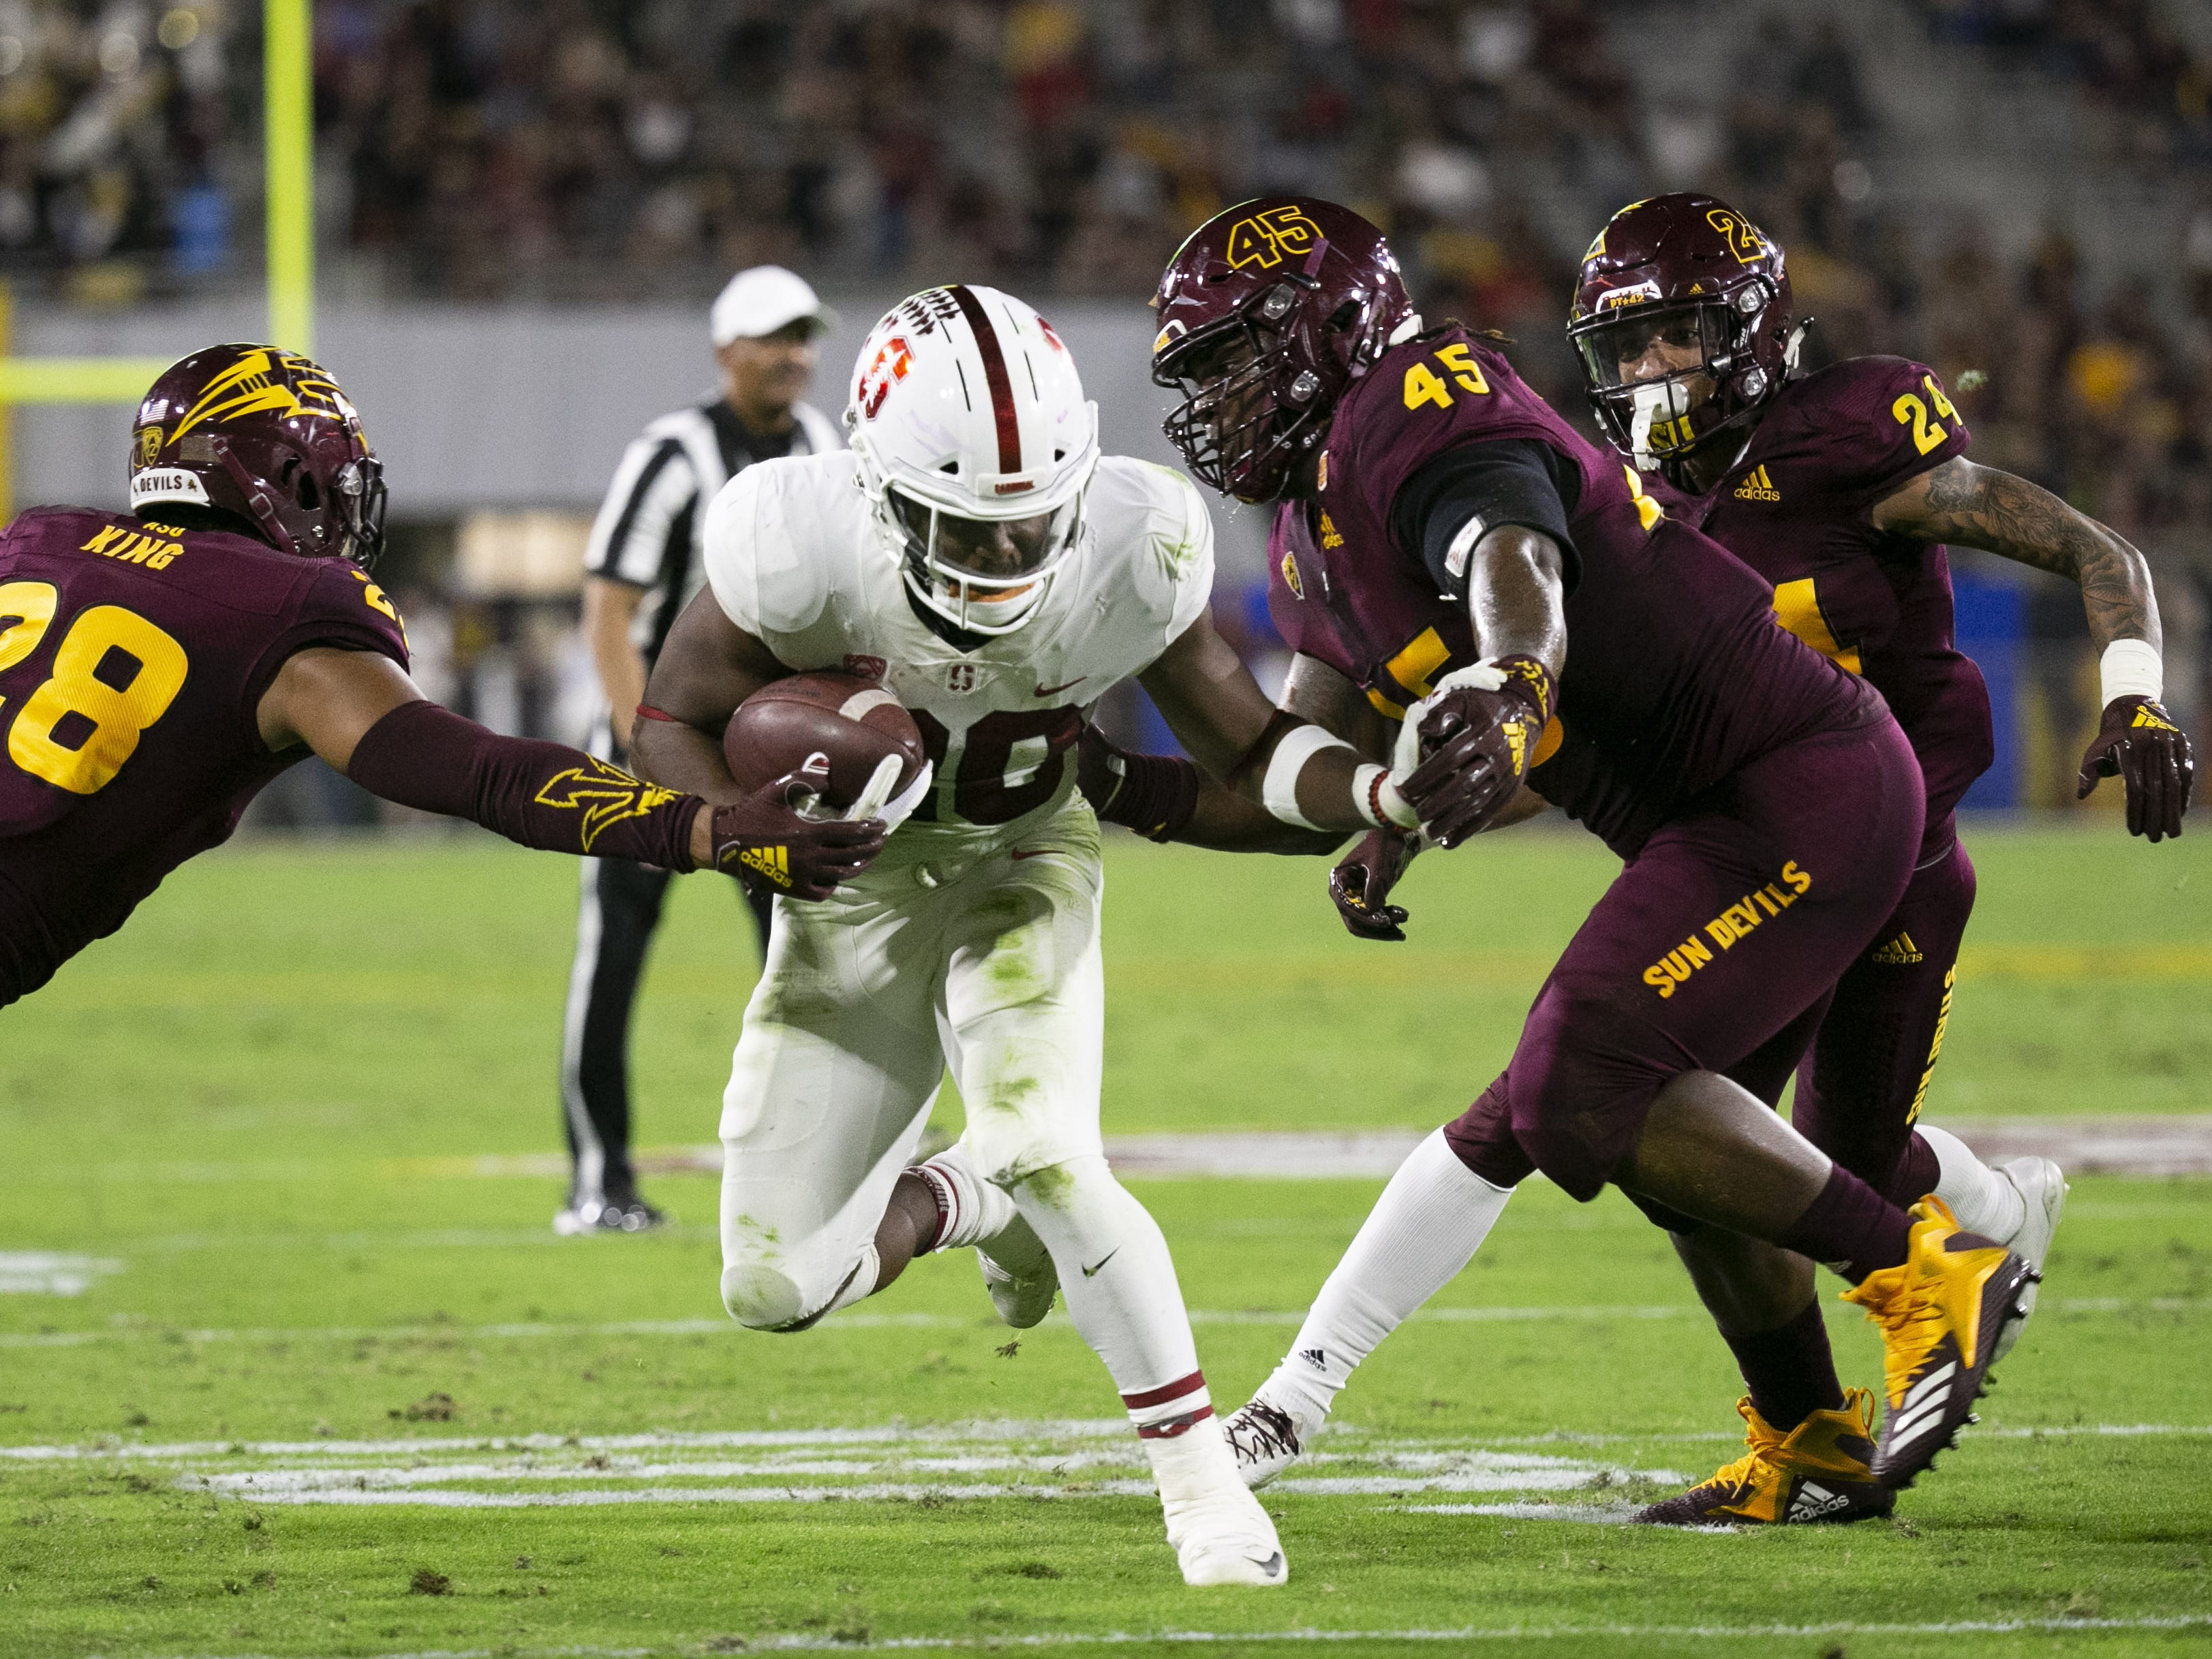 Dress Demonte King (28) and George Lea (45) go in for the tackle against Stanford running back Bryce Love during the first quarter of the Pac-12 college football game at Sun Devil Stadium in Tempe on October 18, 2018.